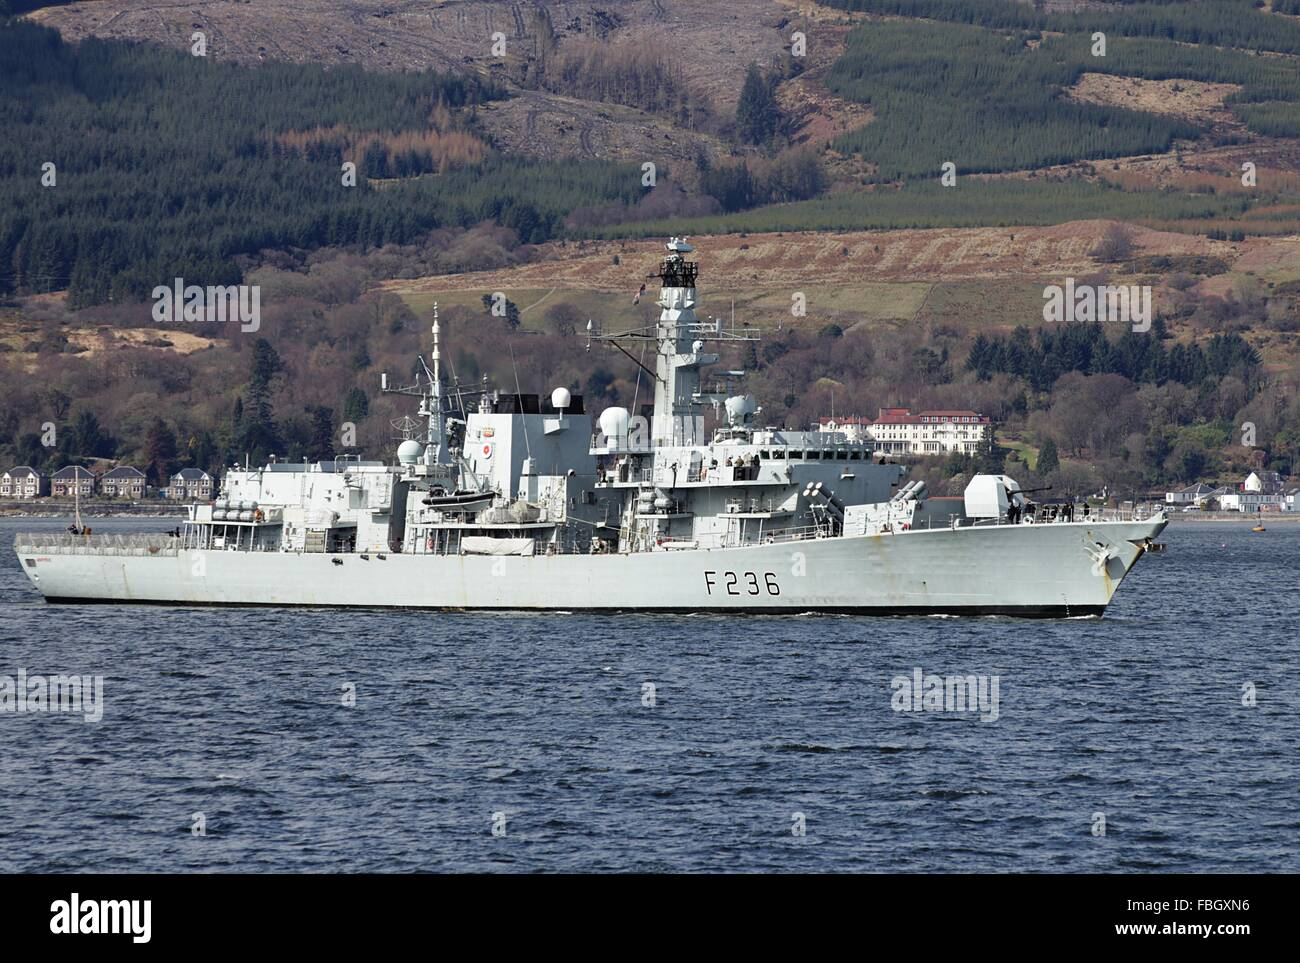 HMS Montrose, a Type 23 or Duke-class frigate of the Royal Navy, approaches Cloch Point after taking part in Joint Warrior 13-1. Stock Photo